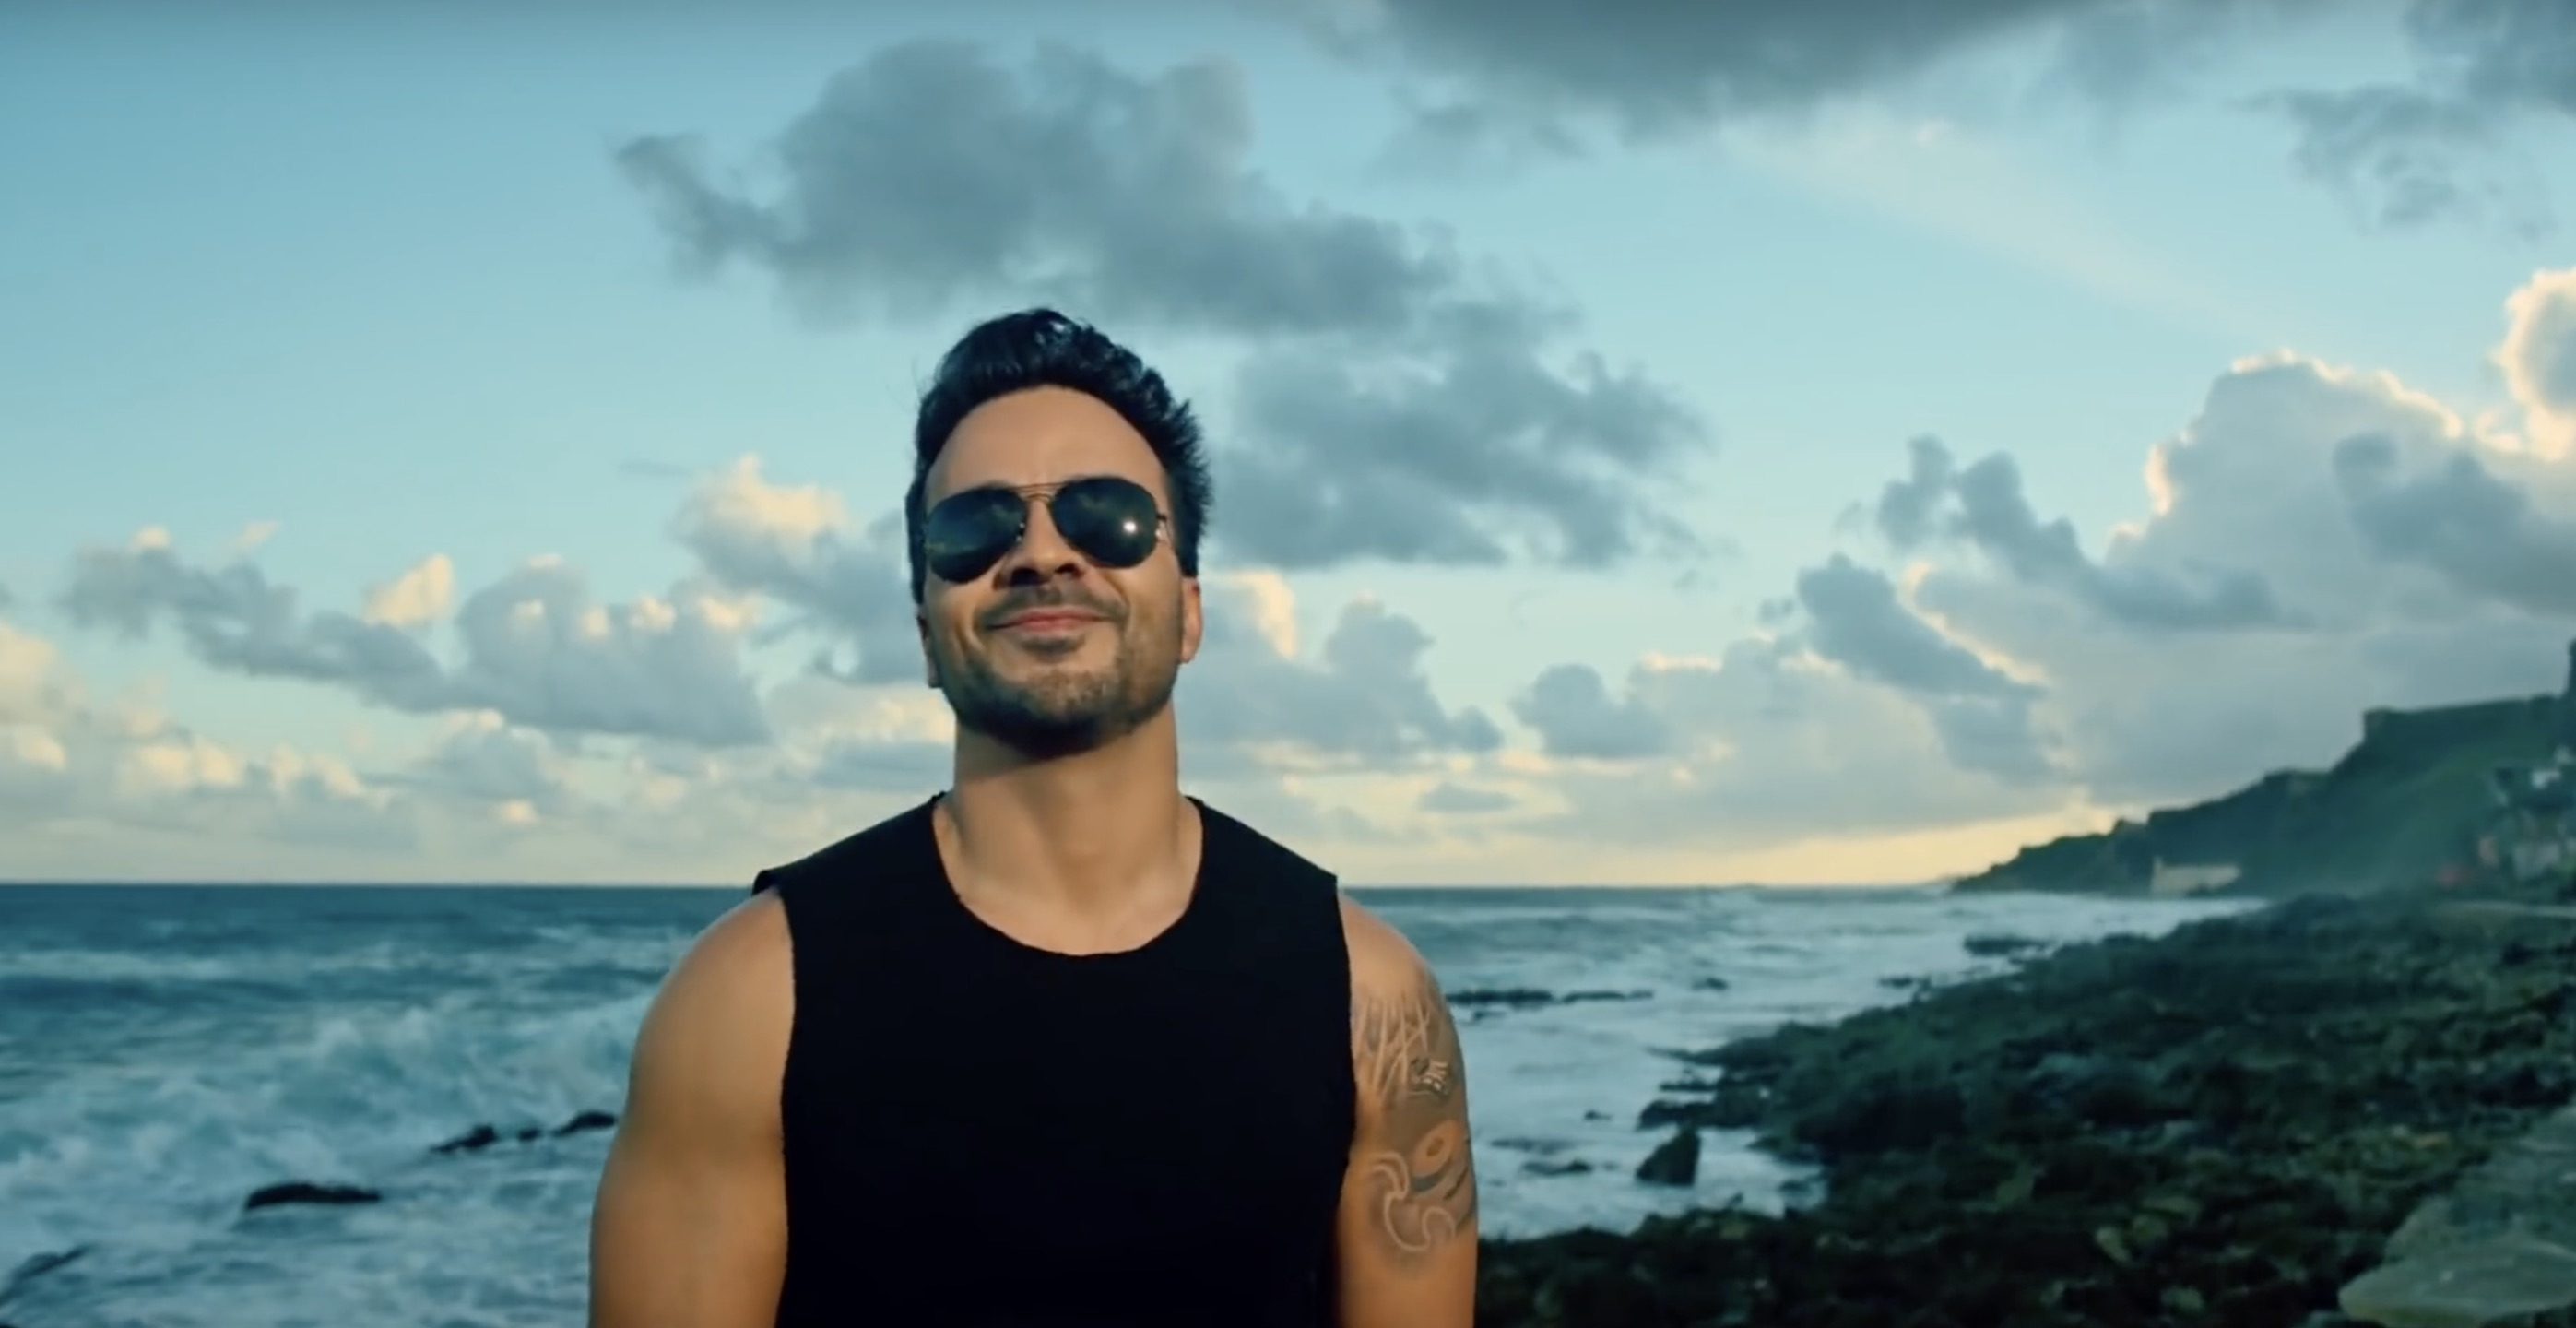 Despacito - Luis Fonsi - top clips décennie - Youtube